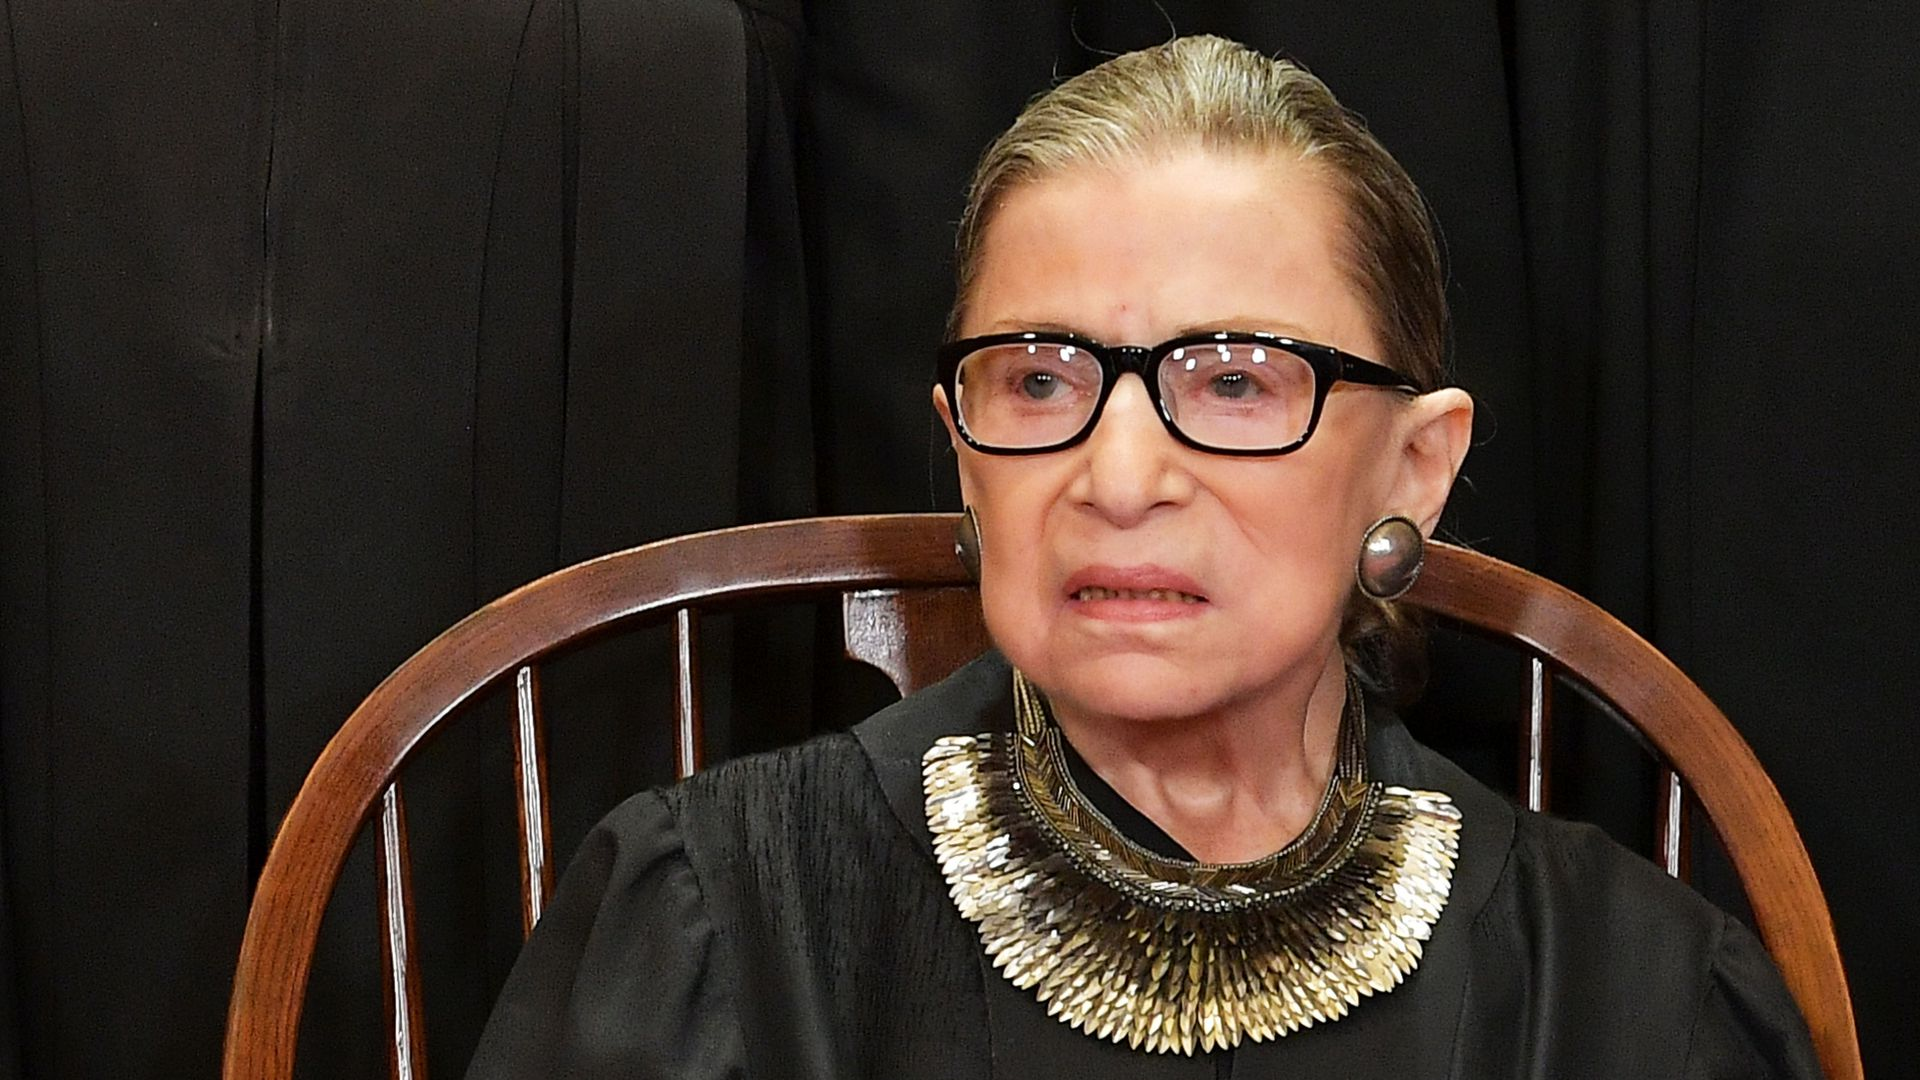 Ruth Bader Ginsburg finishes 3 weeks of radiation therapy